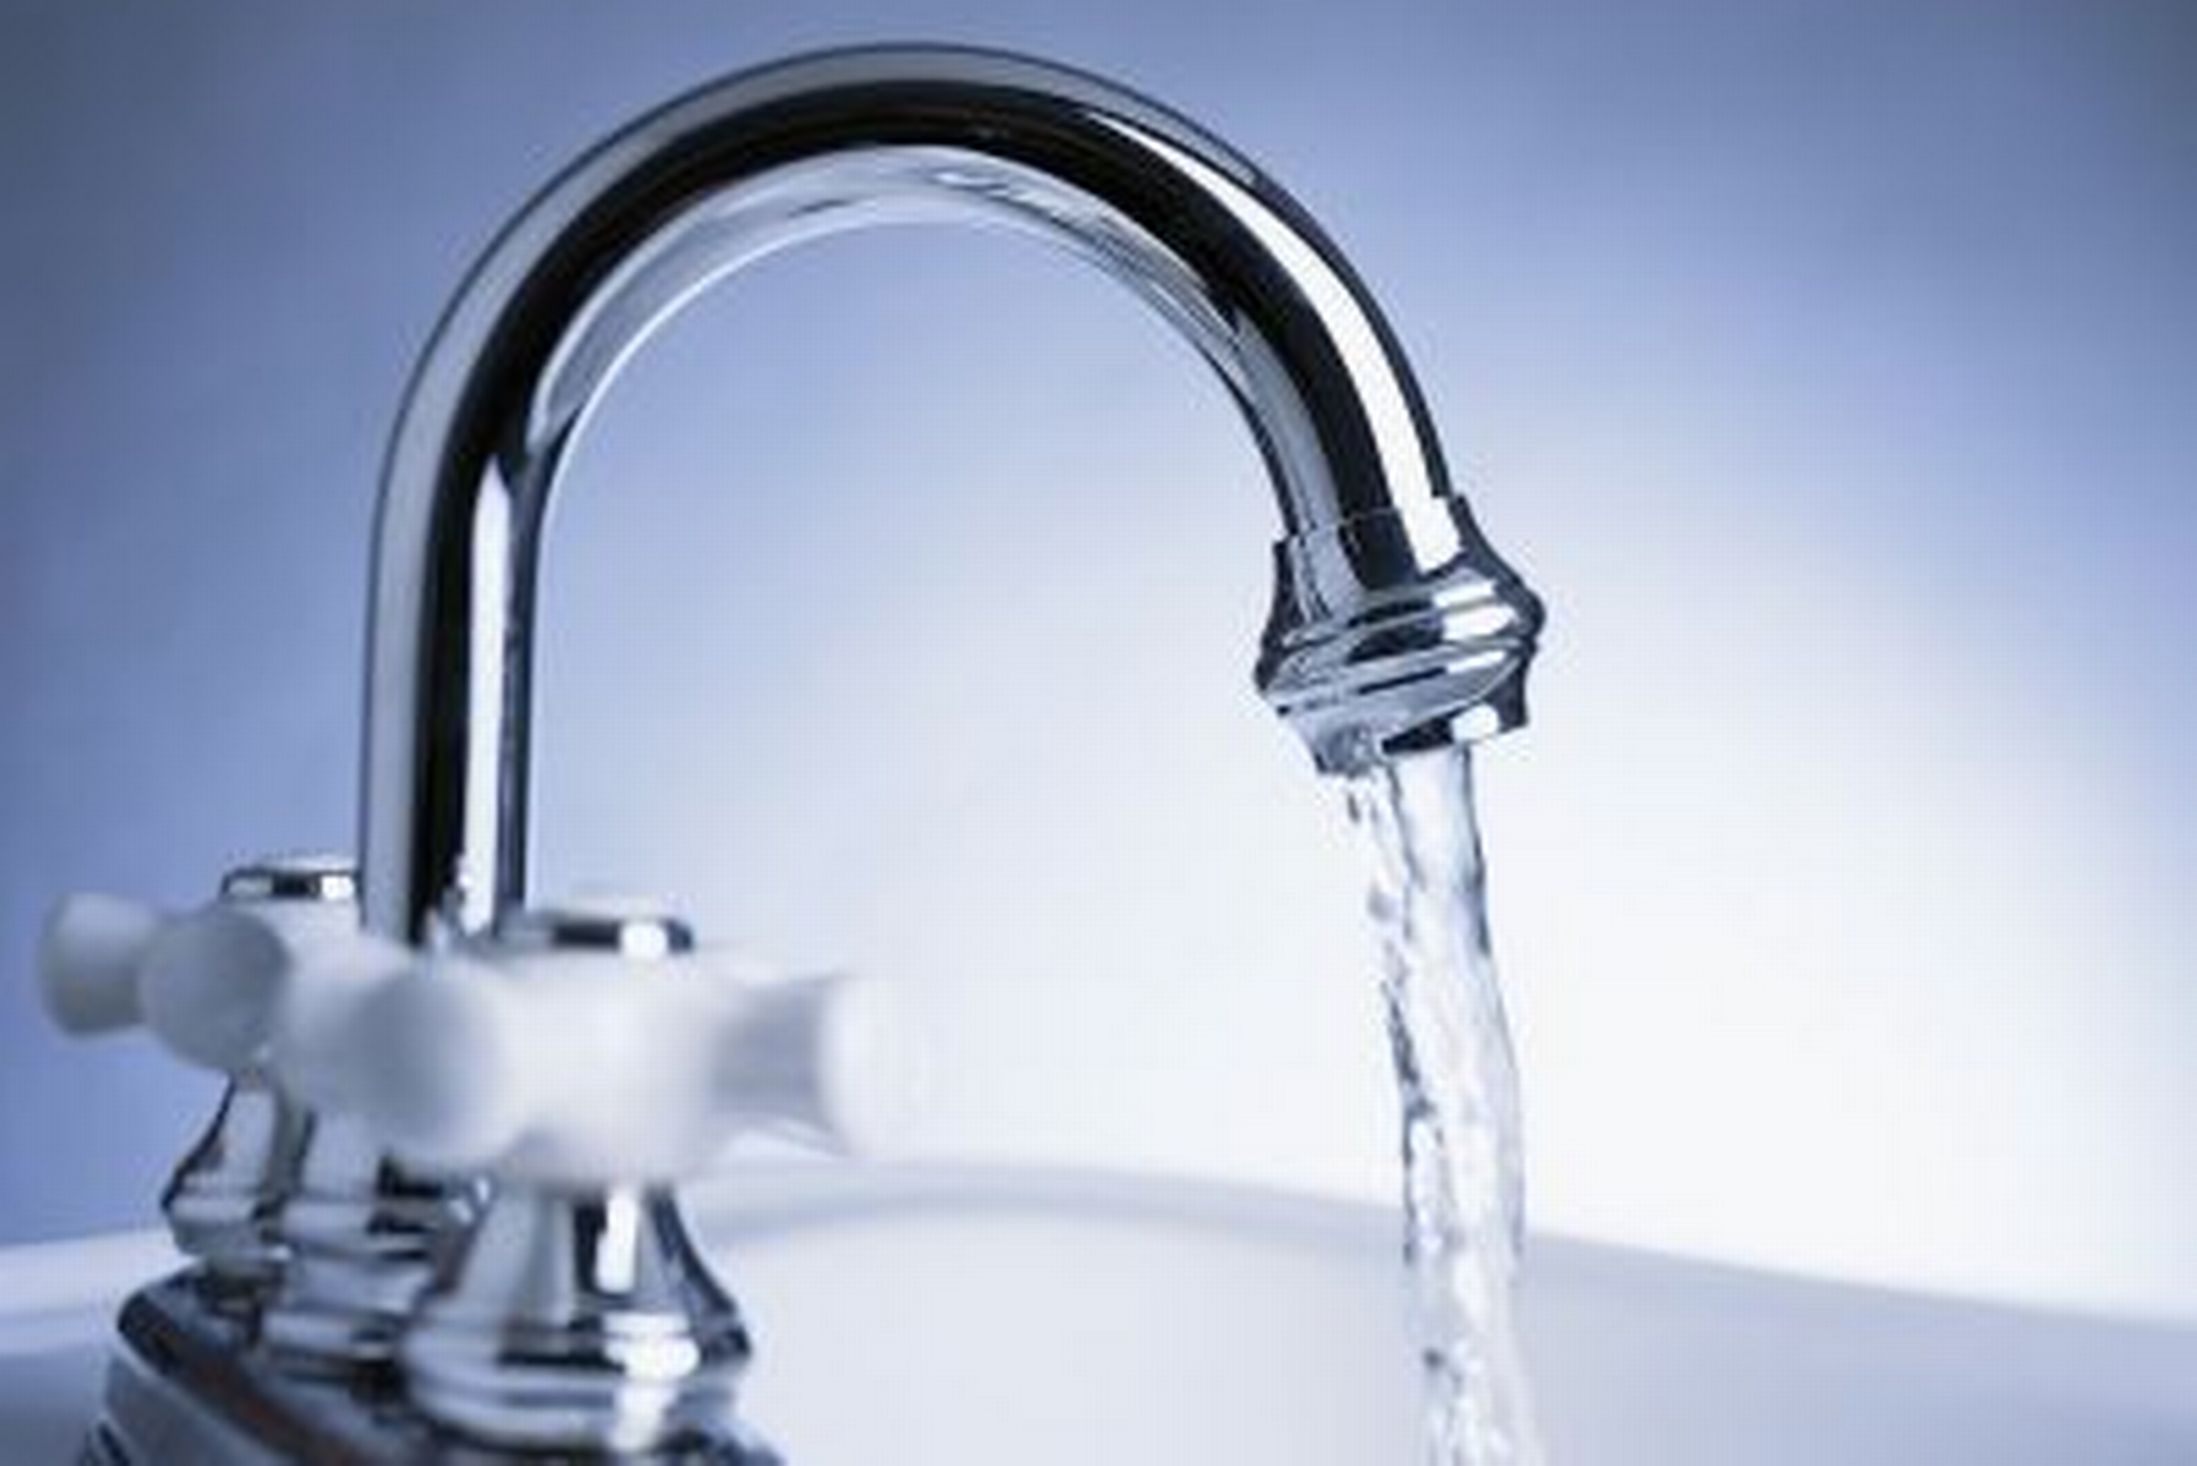 Boil Order For Clinton City Water Supply Continues, Syracuse Order ...